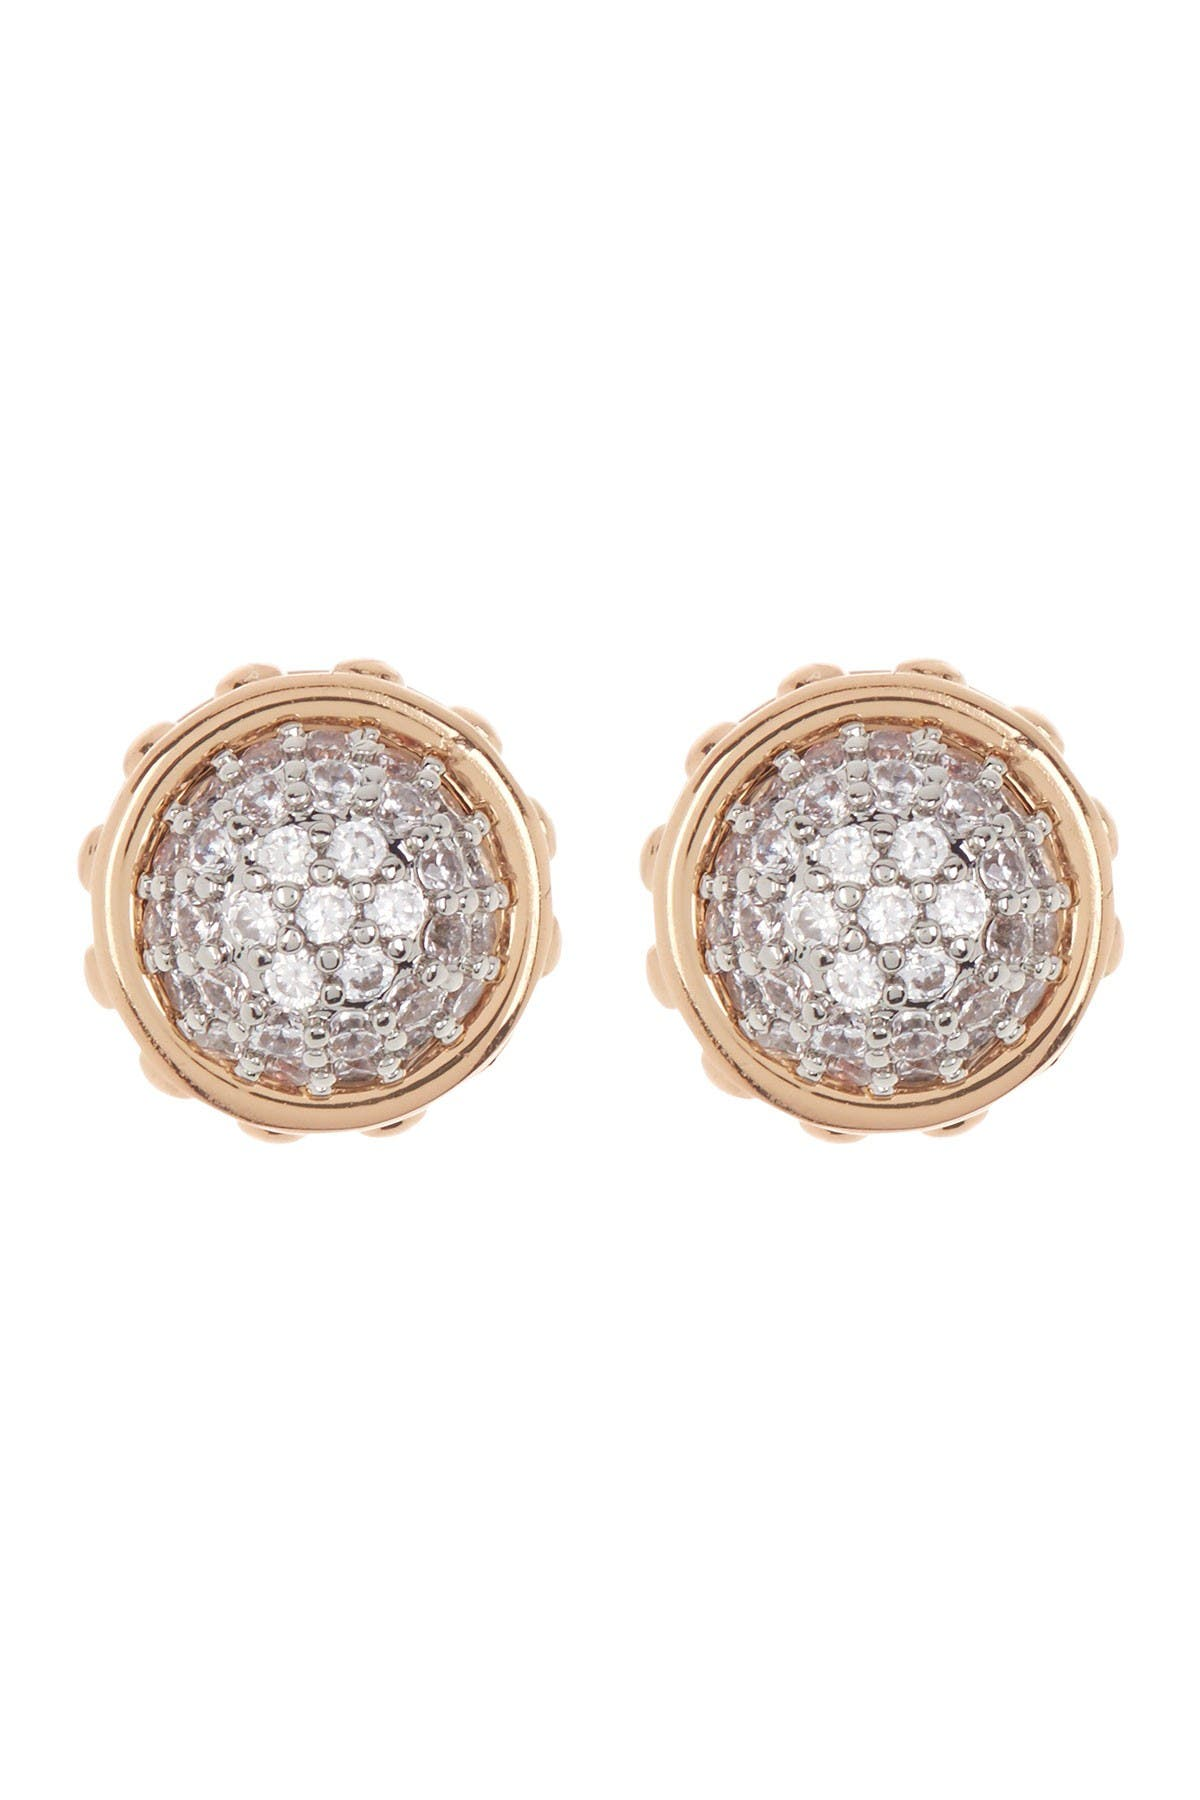 Image of Rebecca Minkoff Two-Tone Pave Dome Stud Earrings